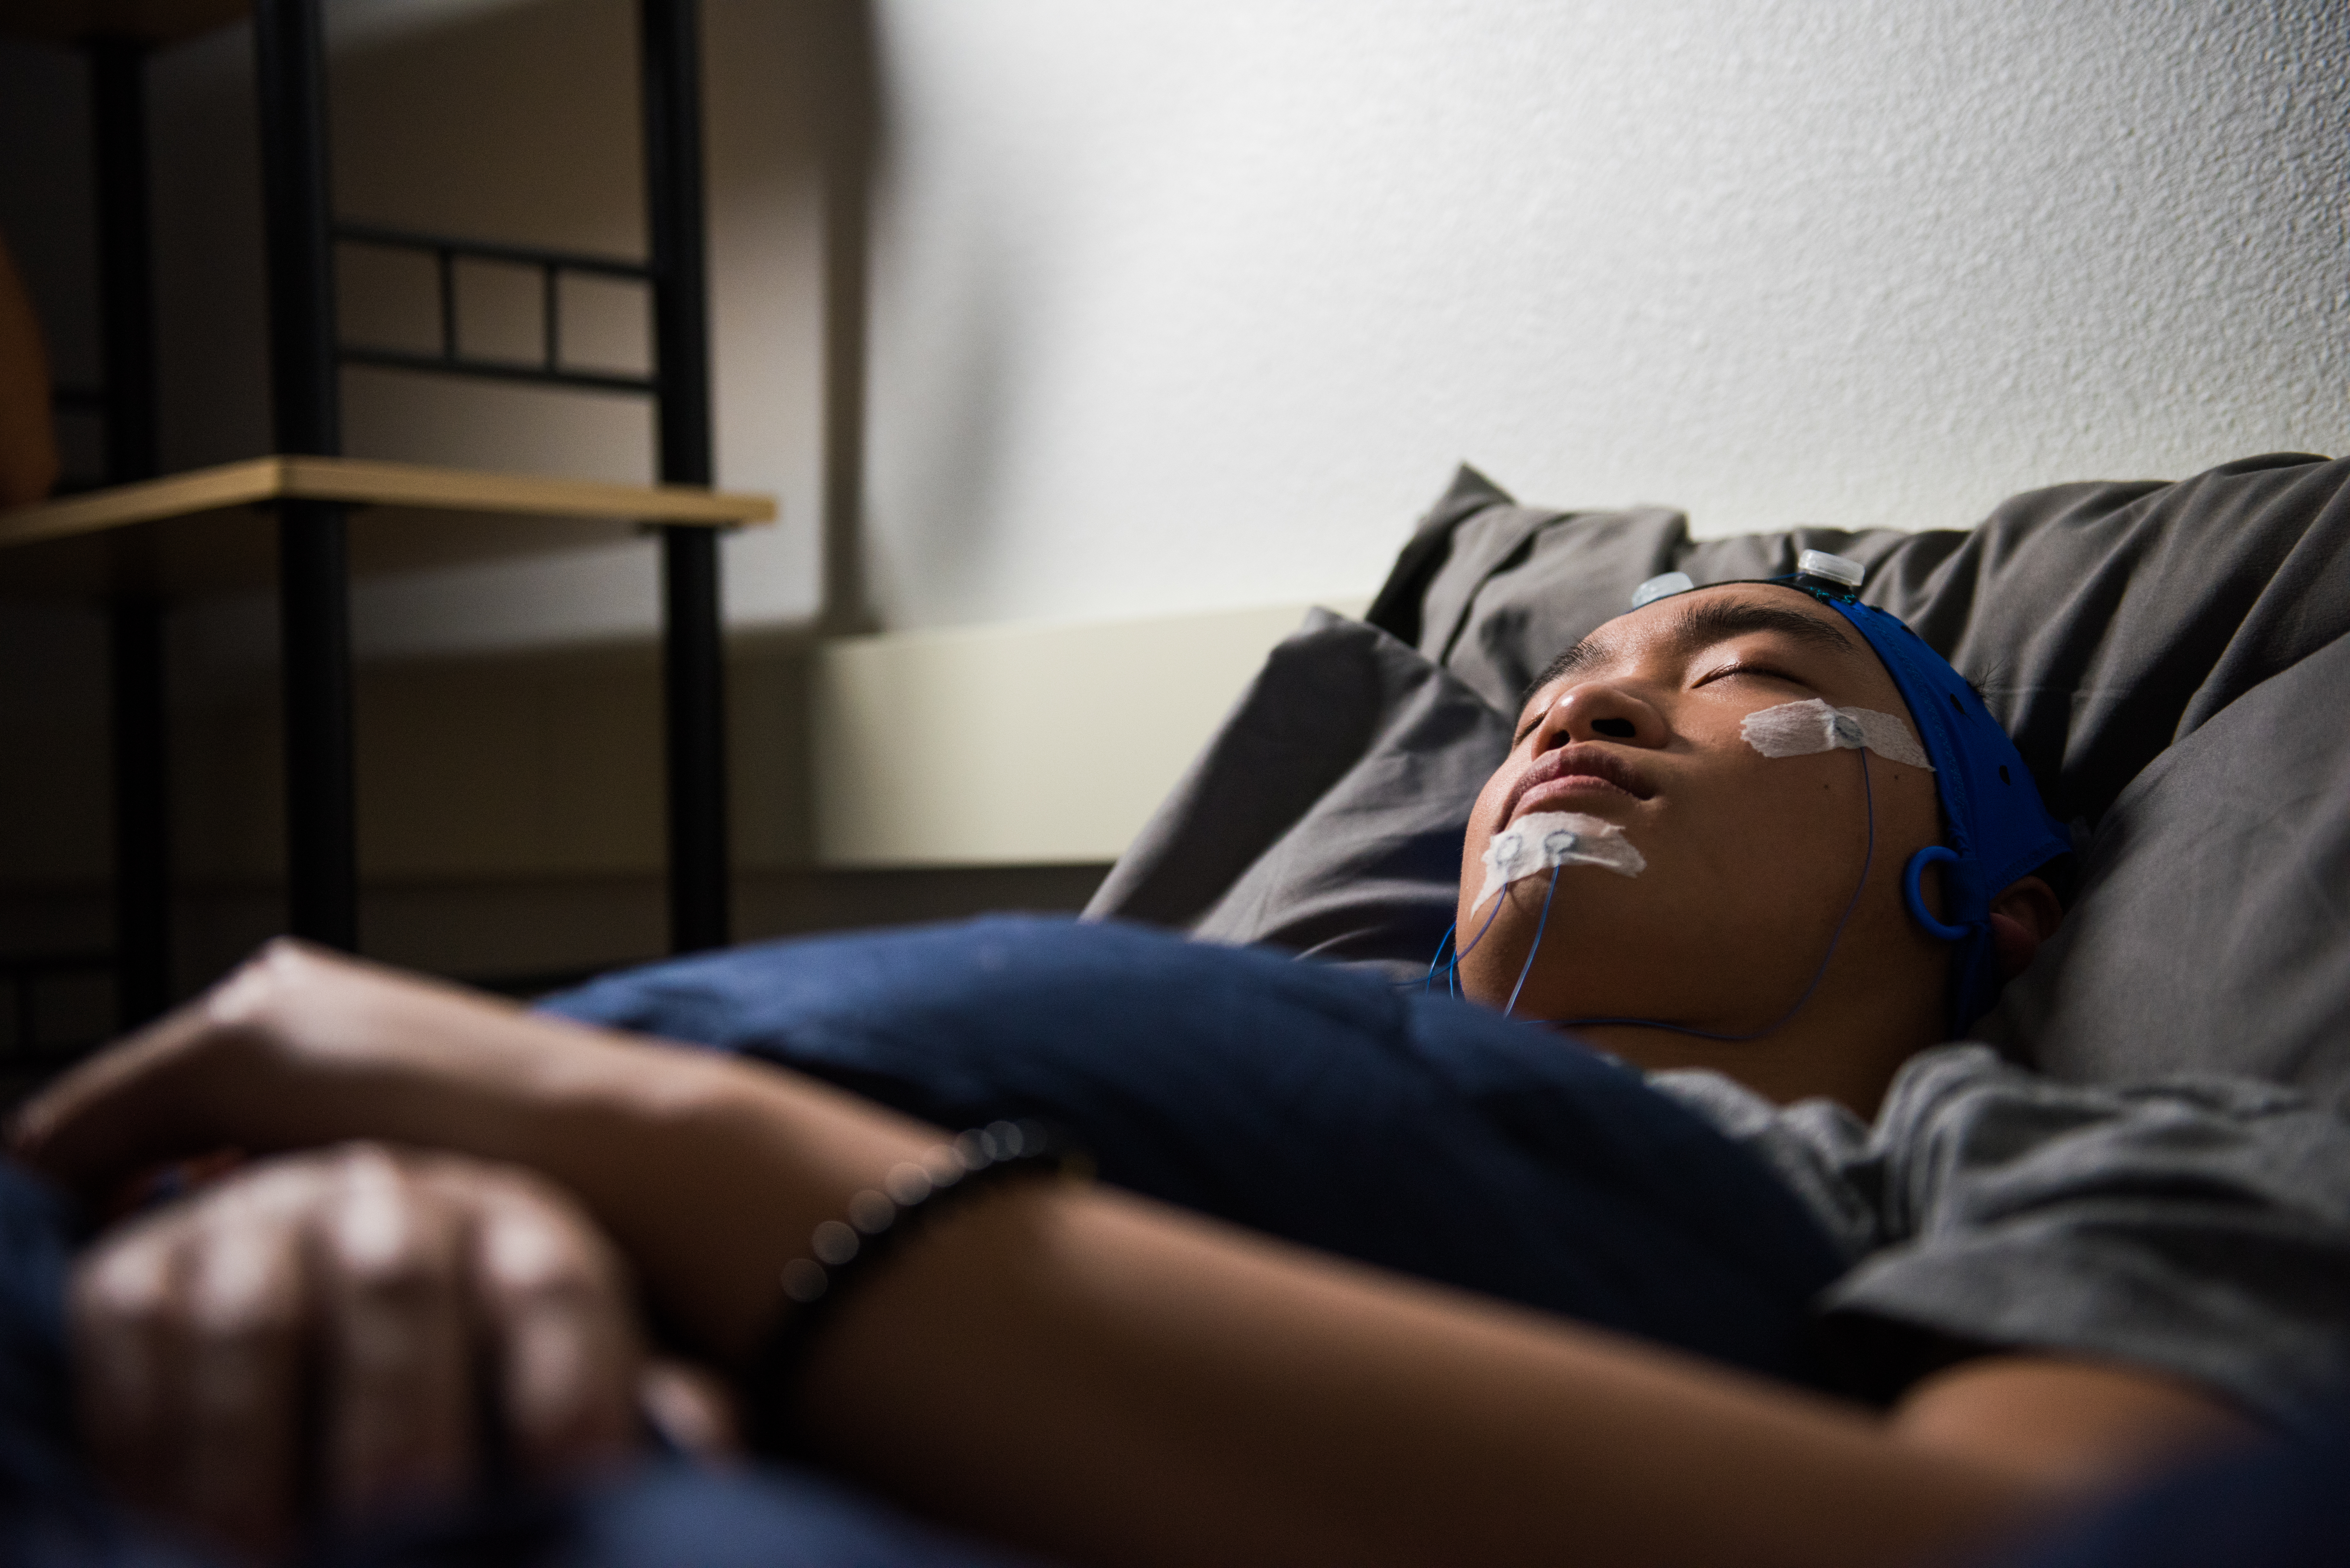 A young man sleeps on a bed in a dimly-lit room, his face connected to several monitoring wires.